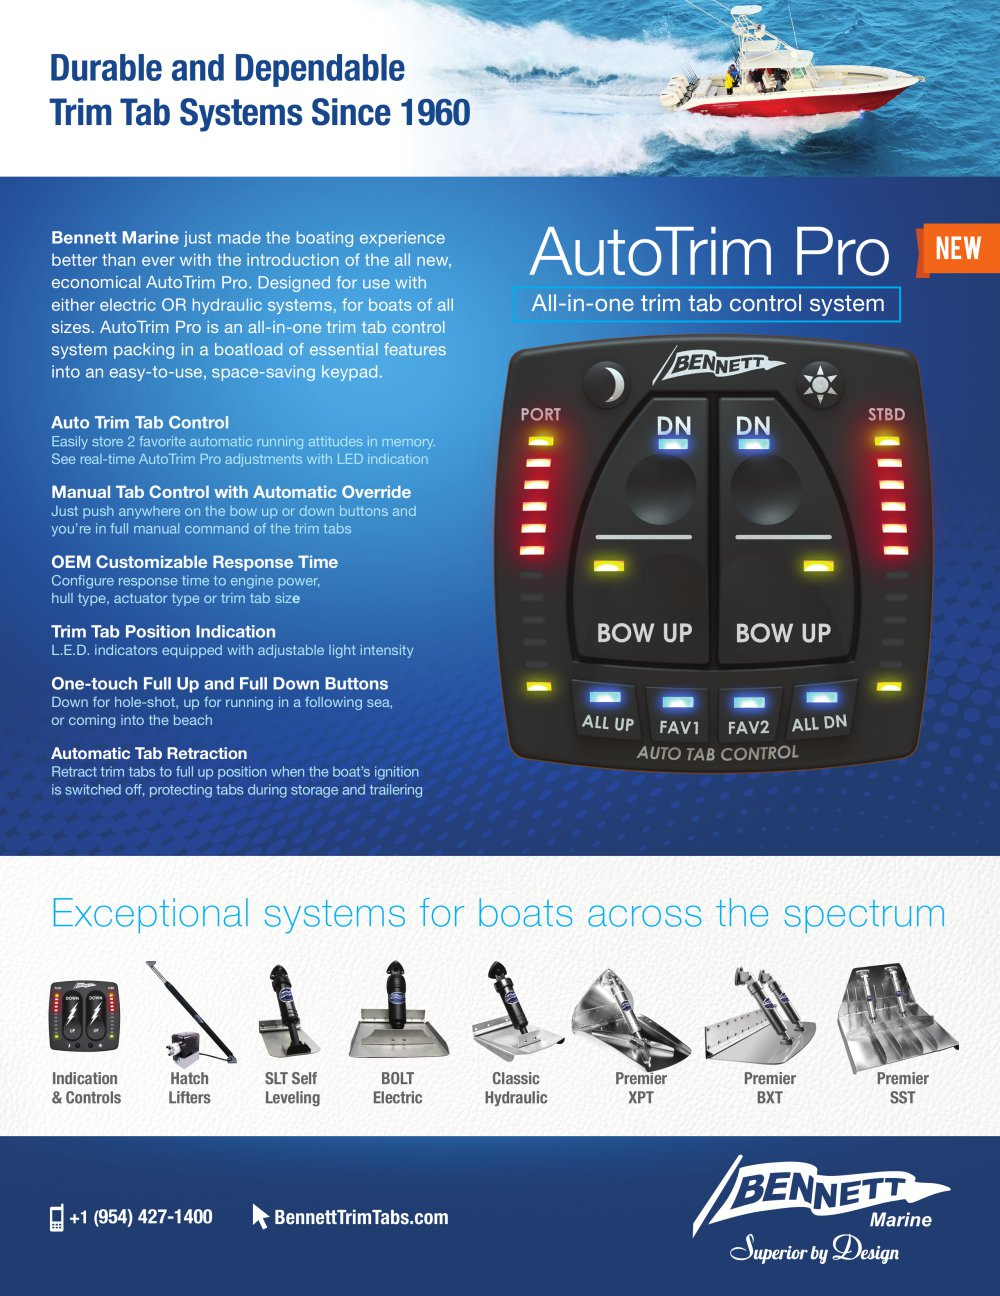 Bennett Auto Trim Tabs Manual Atc Automatic Tab Controller Installation In A Boat Autotrim Pro 1 Pages